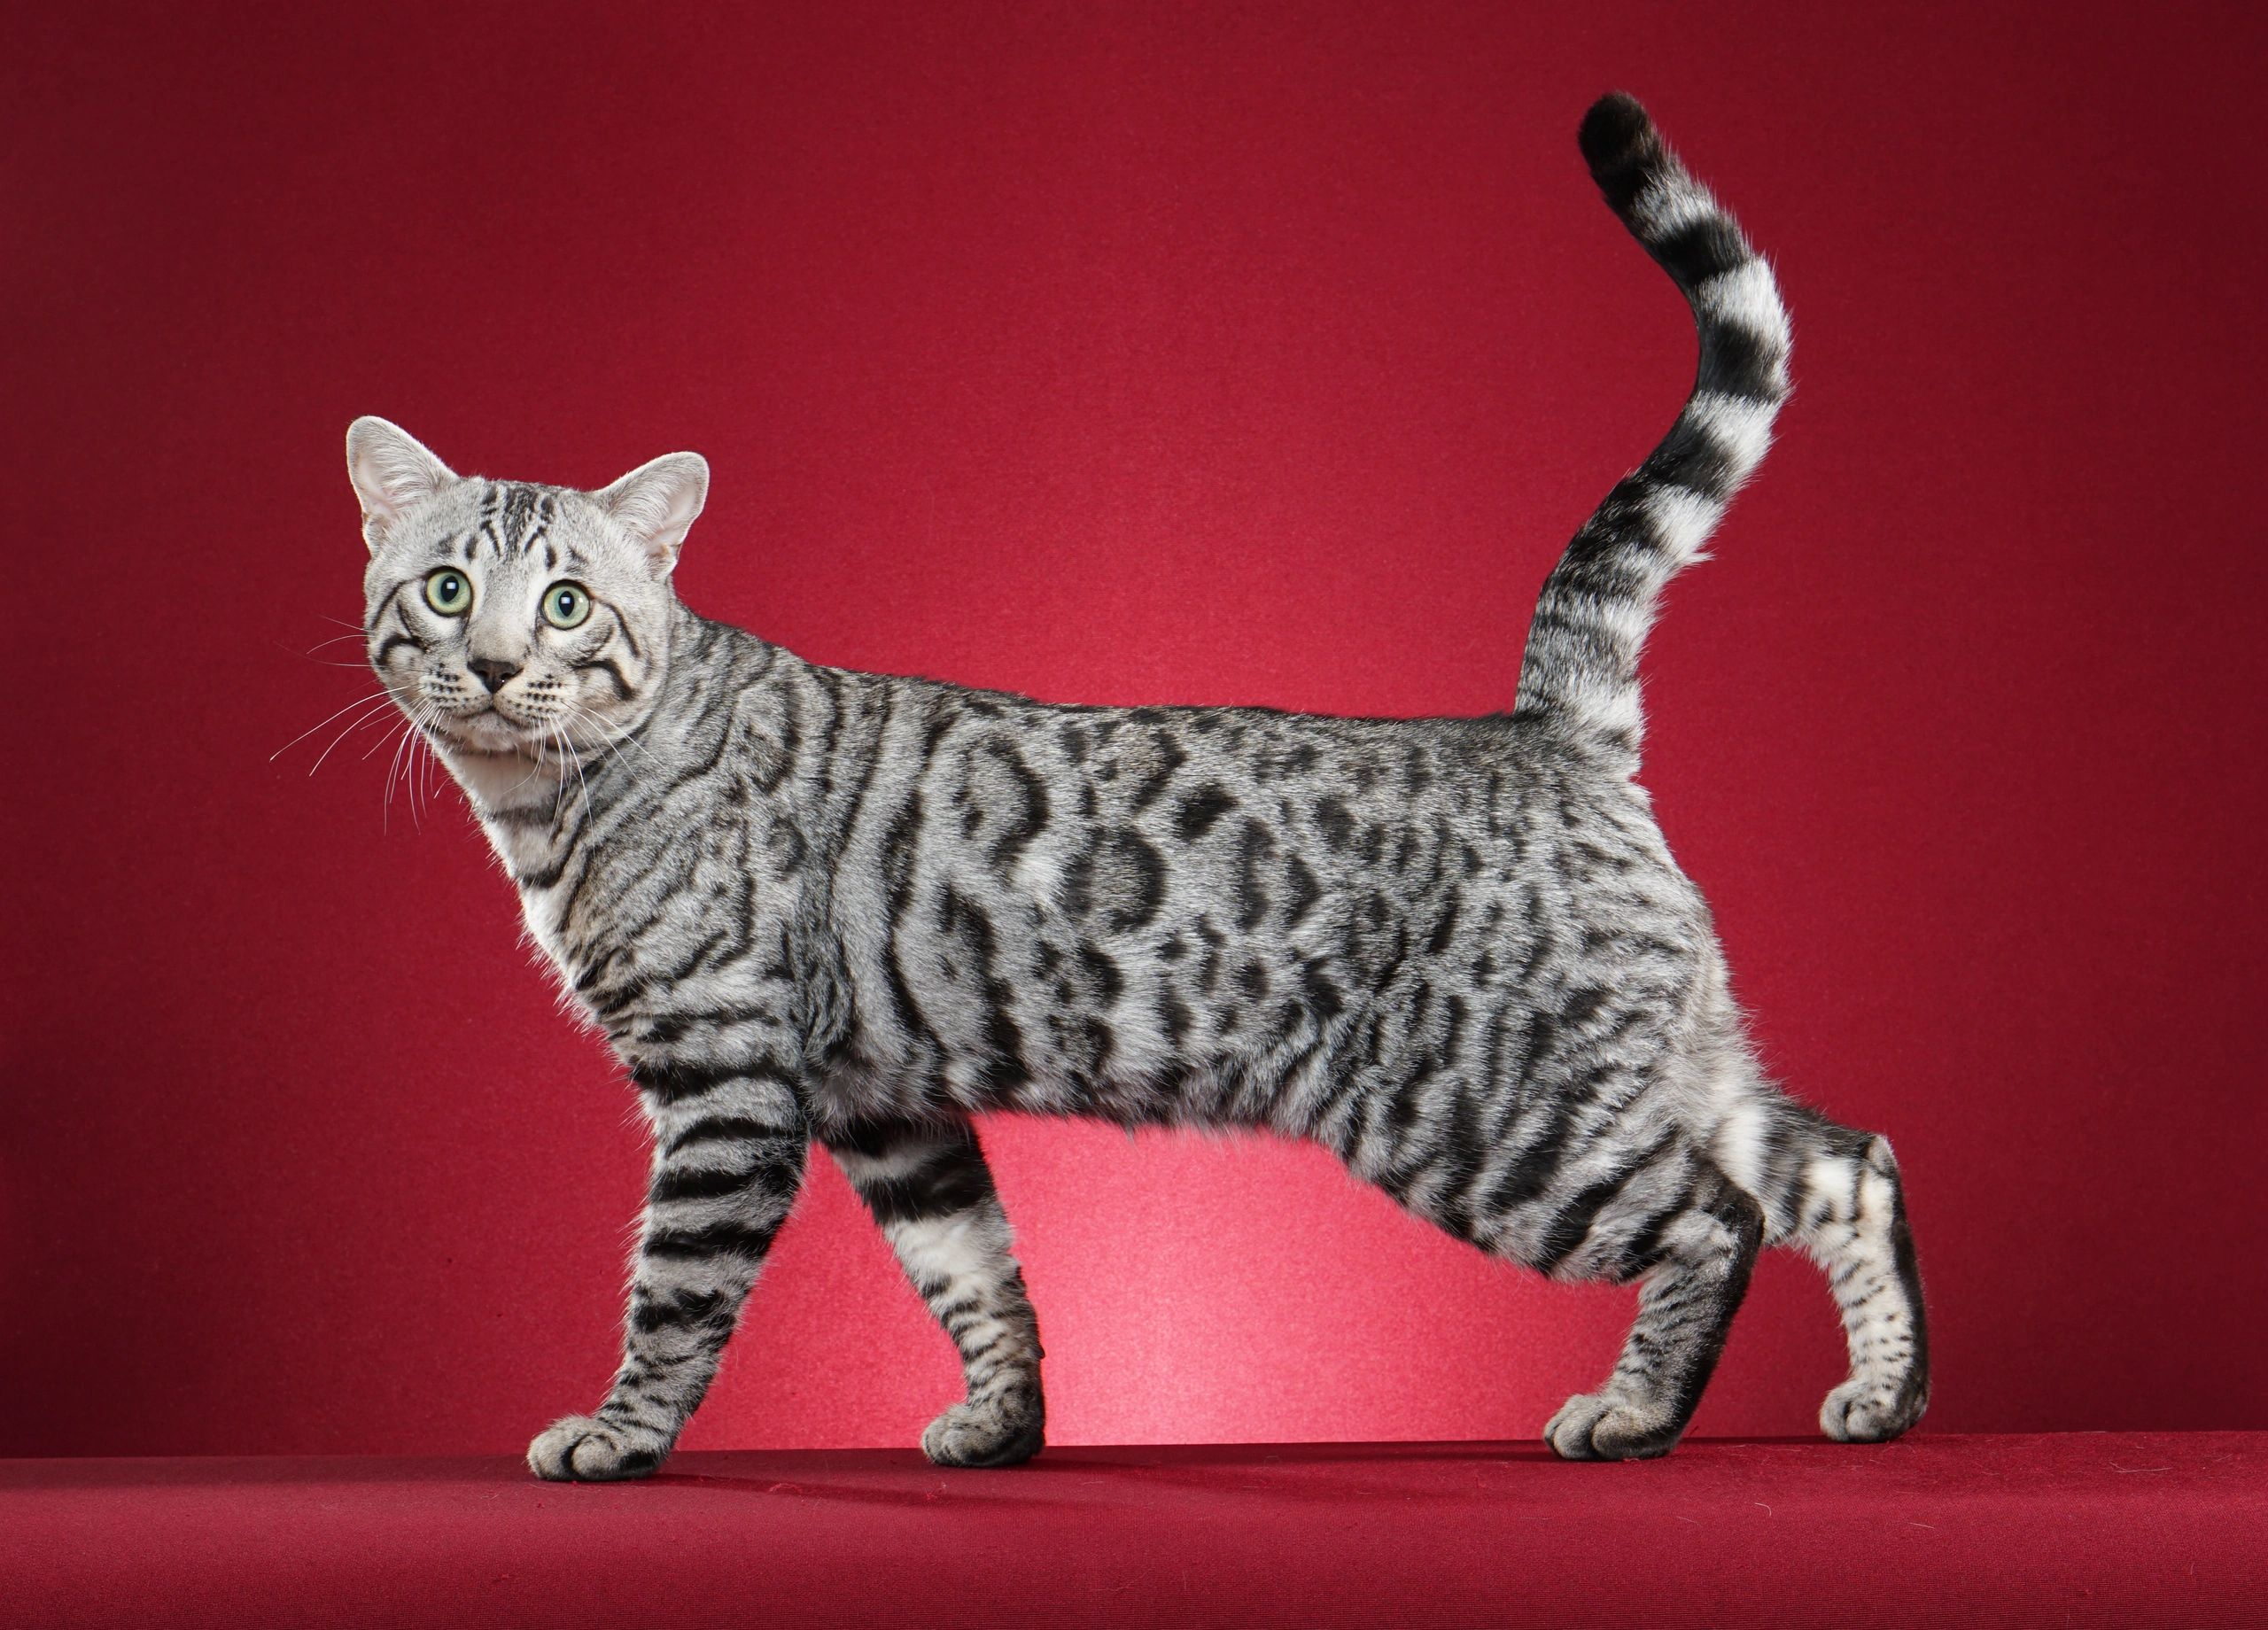 Bengal Cats and Kittens for Sale - Capstone Bengals